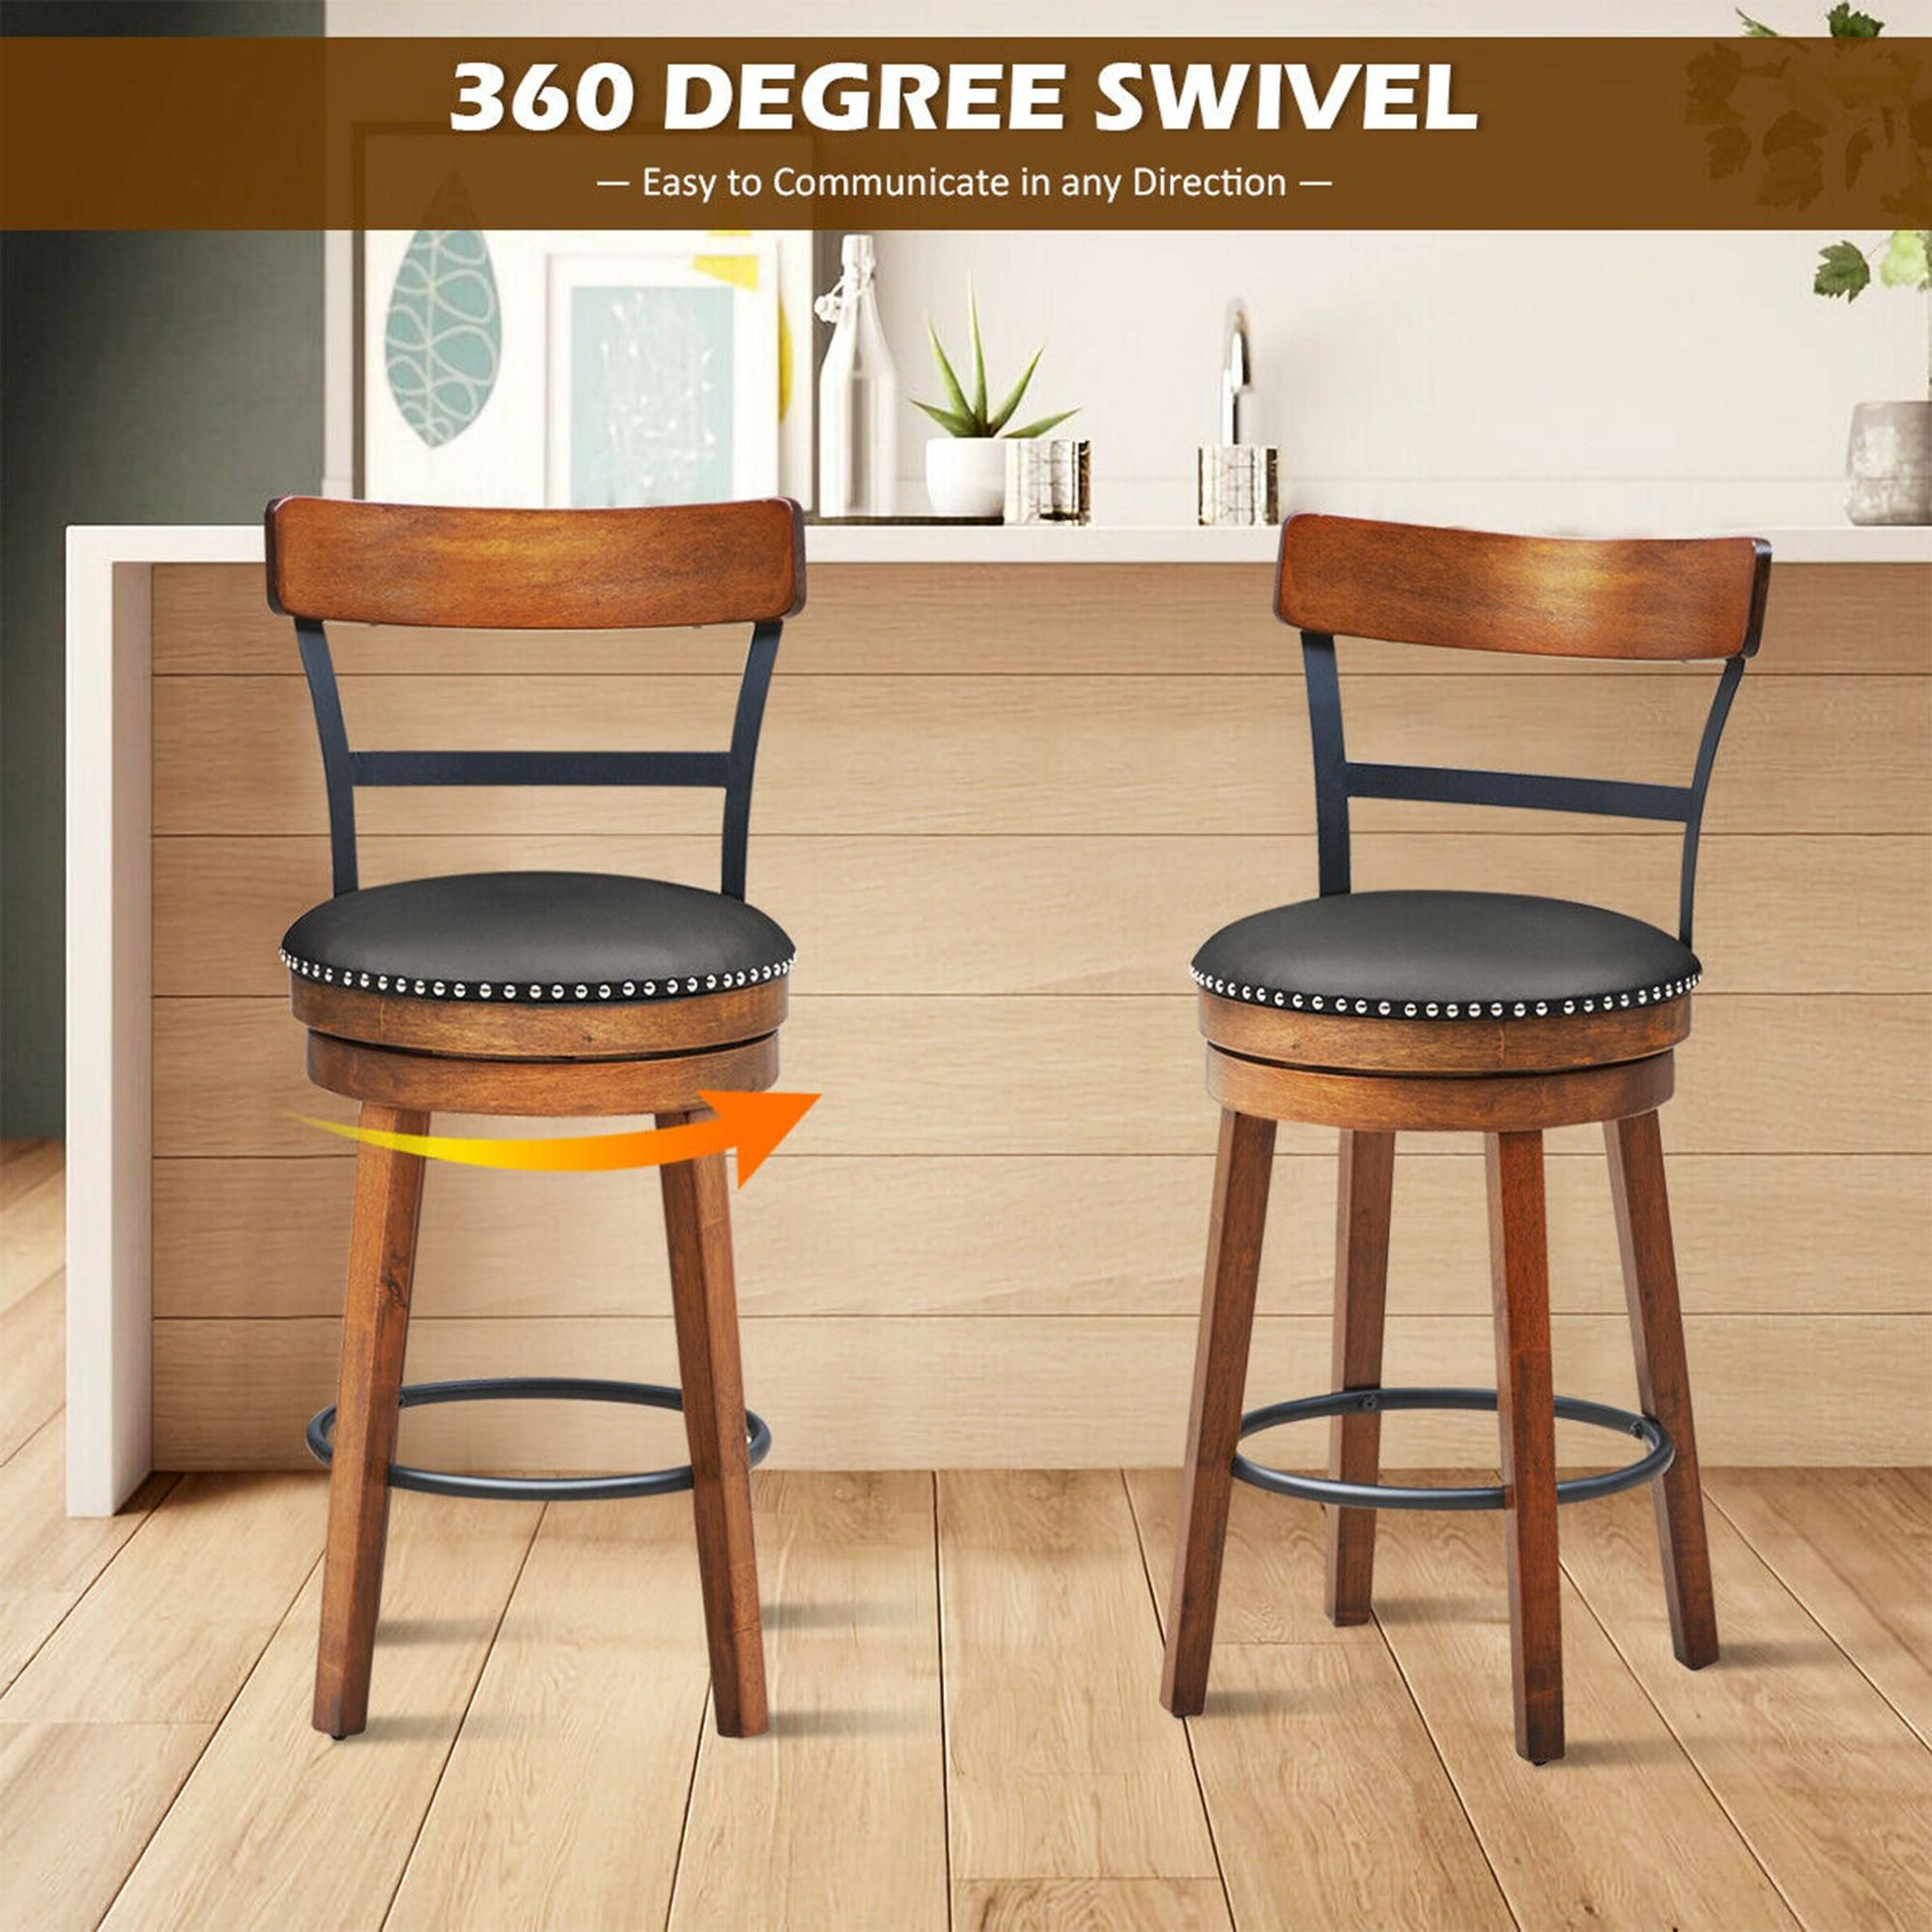 Costway Set of 4 BarStool 25.5'' Swivel Counter Height Dining Chair with Rubber Wood Legs